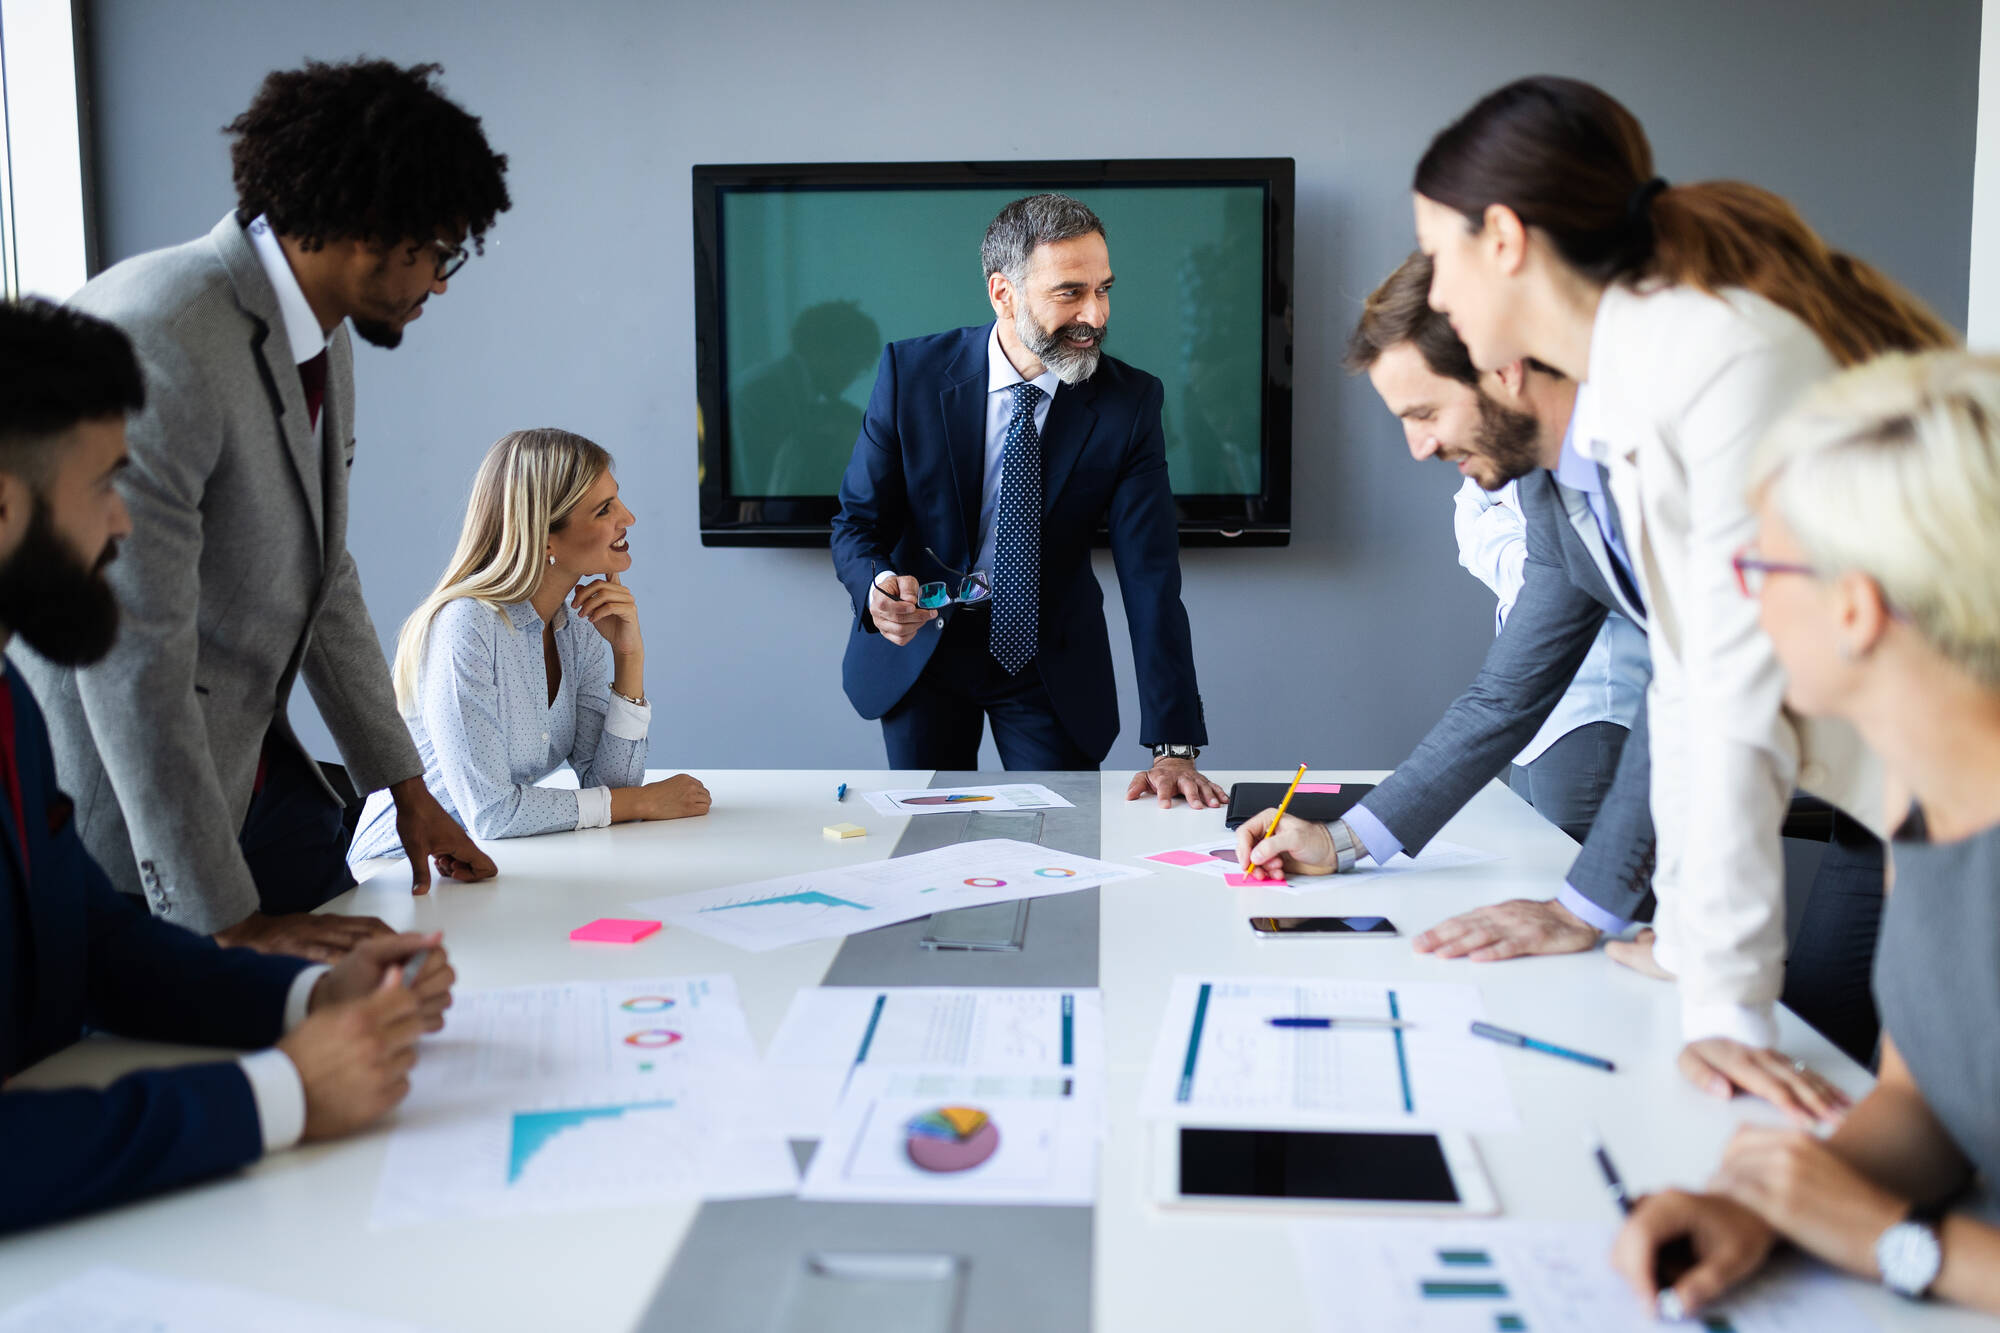 meeting and business planning